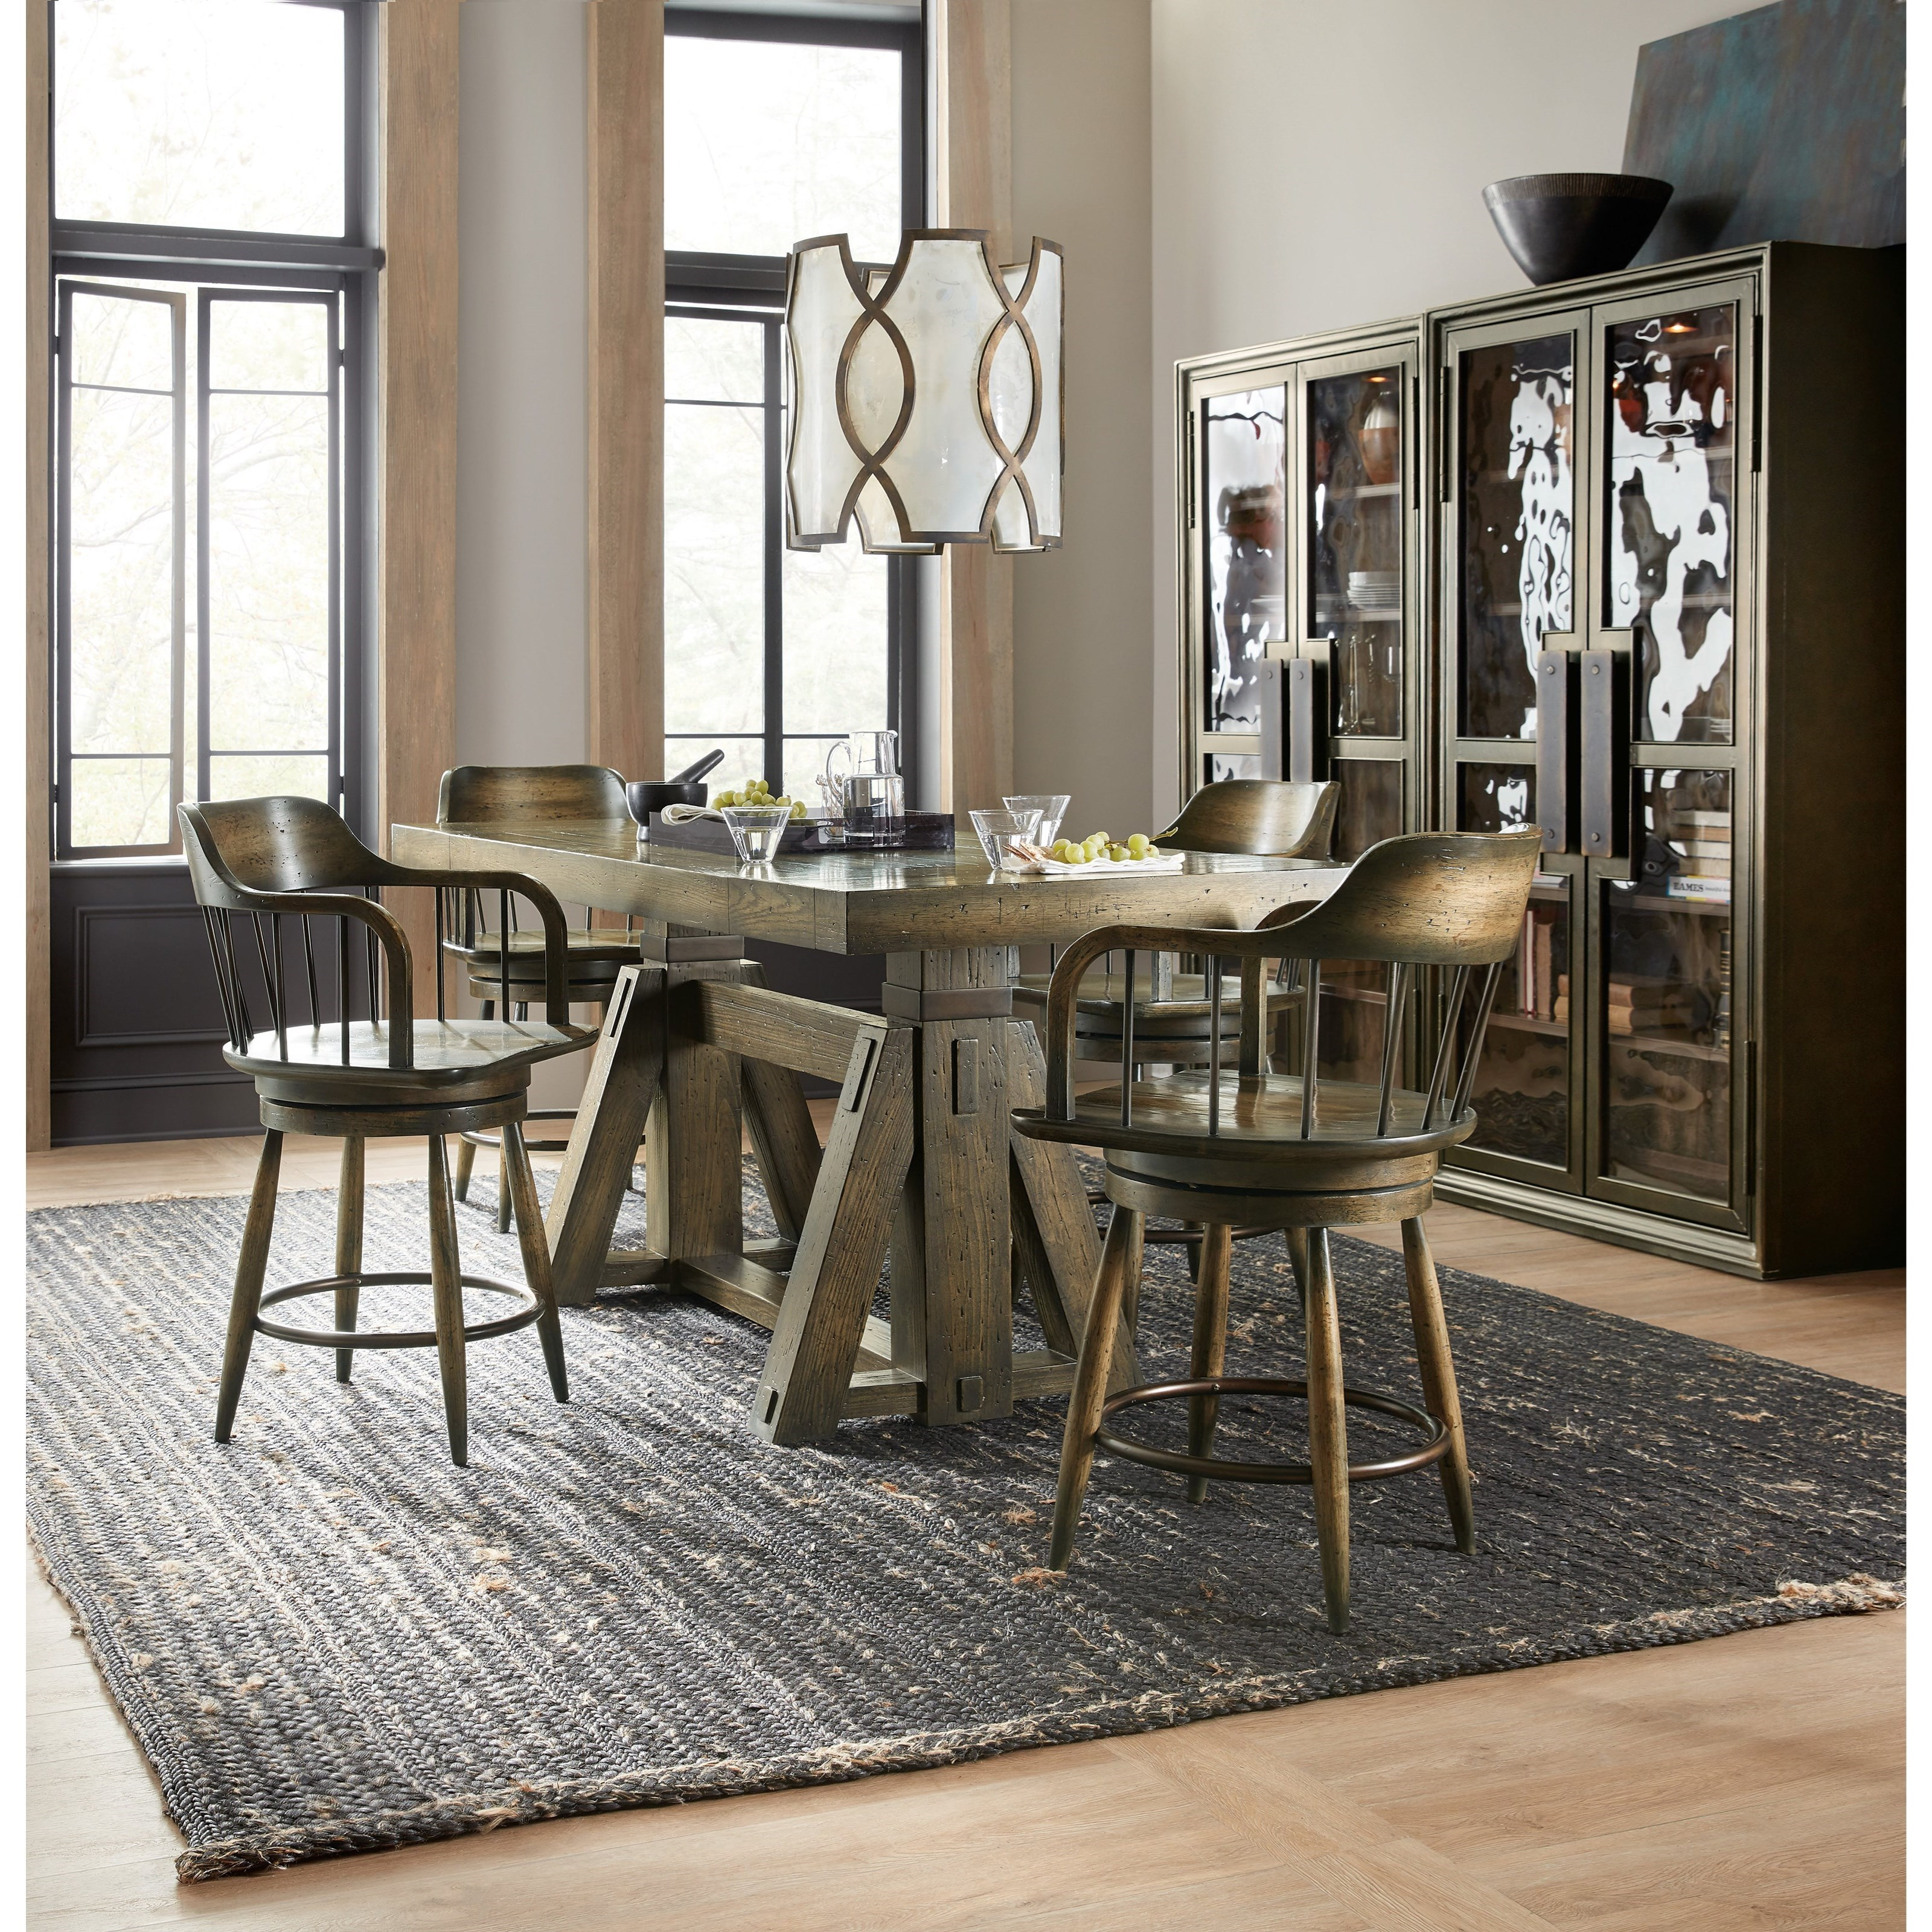 American Life-Crafted 5 Piece Table and Chair Set by Hooker Furniture at Mueller Furniture